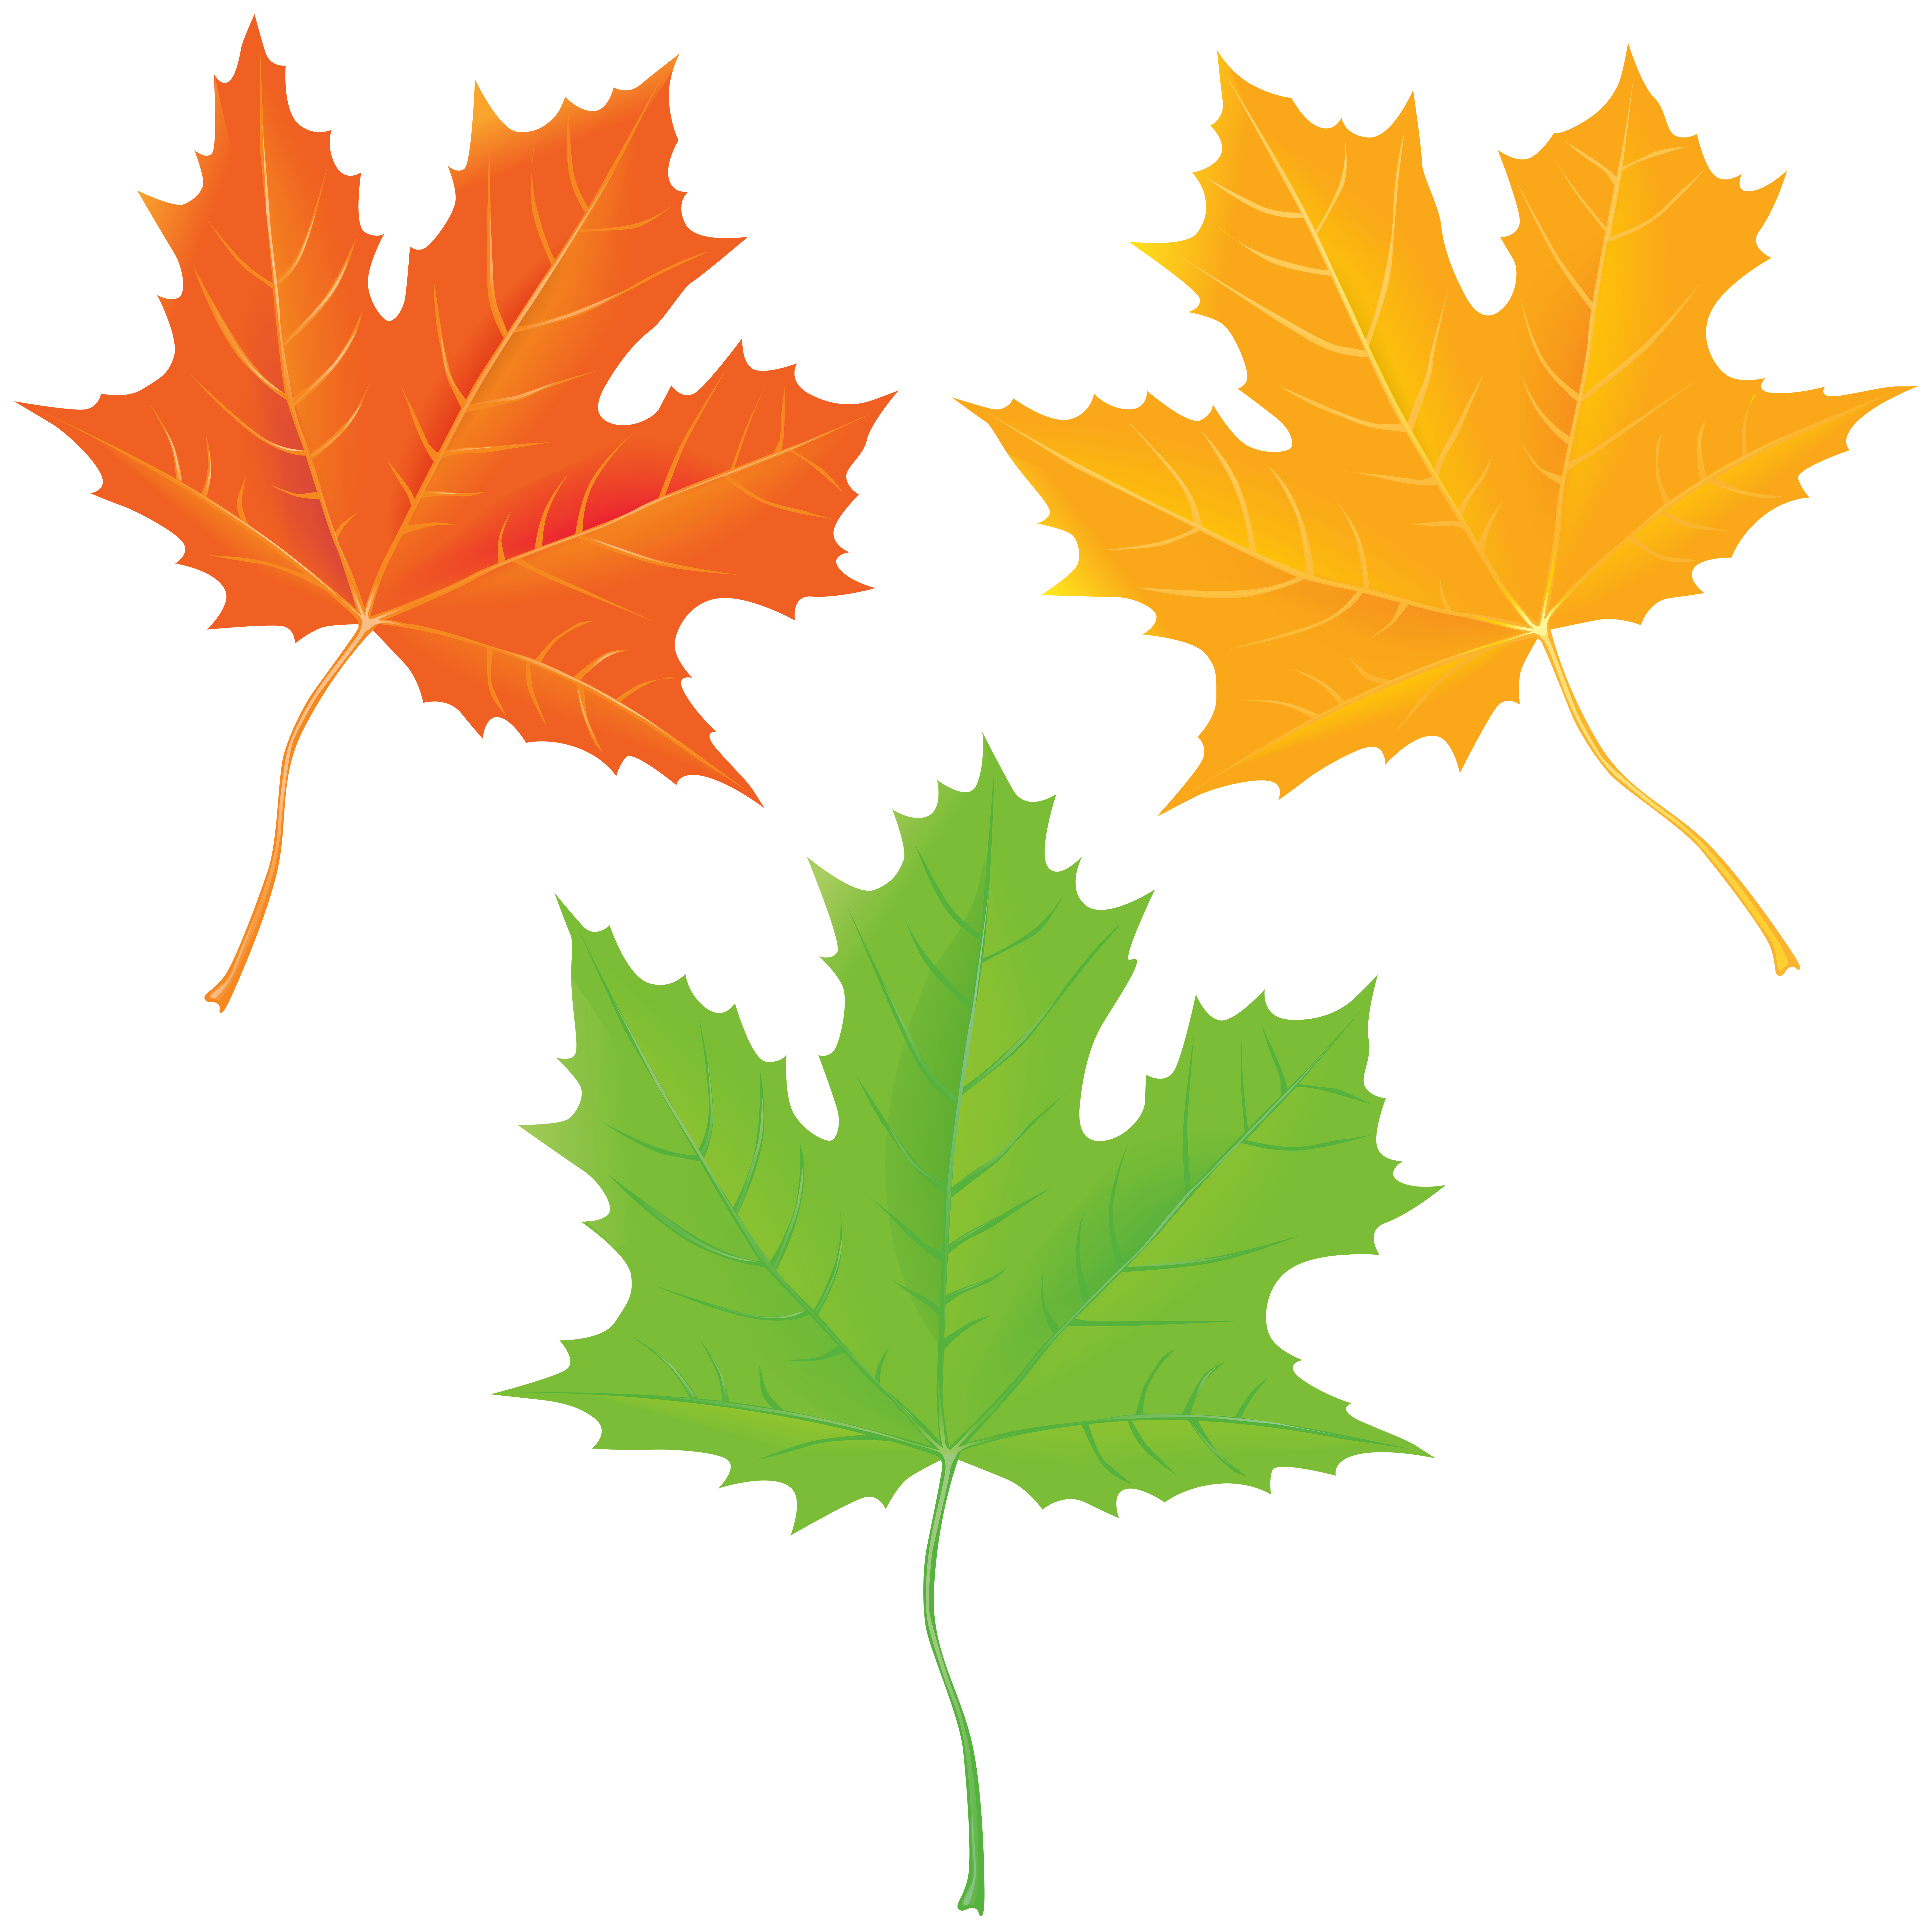 Autumn Leaves Clipart at GetDrawings | Free download